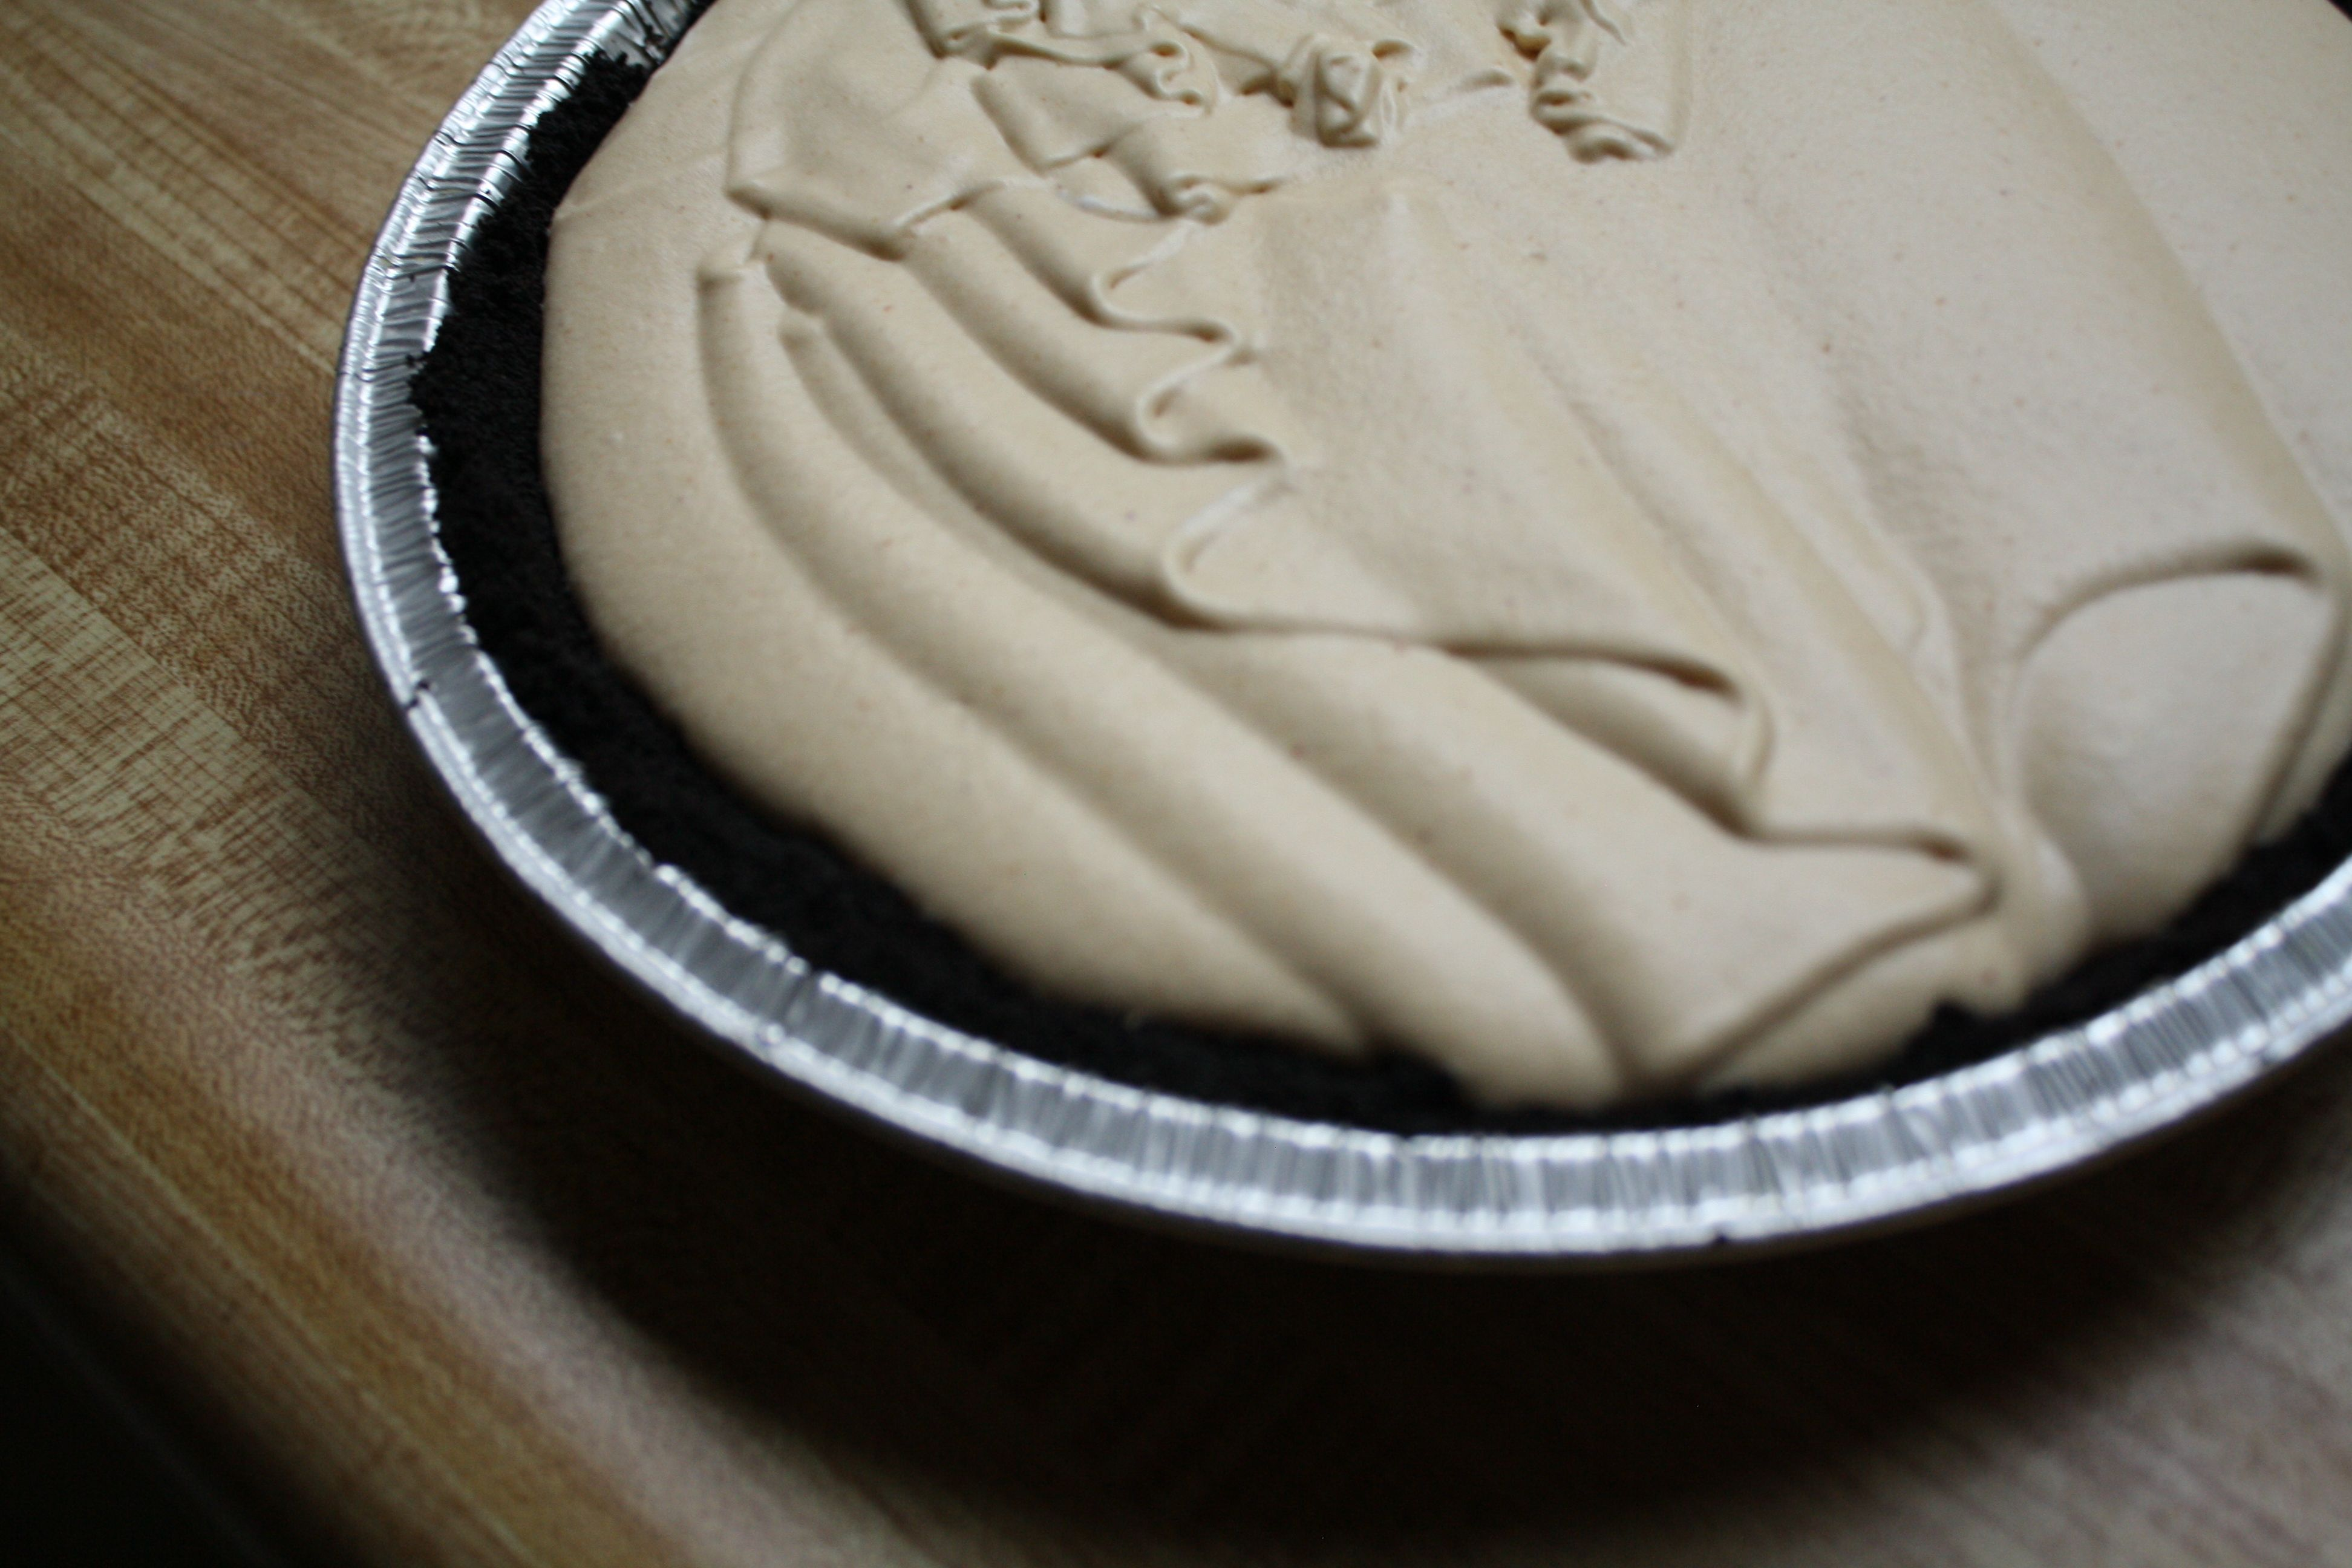 Peanut Butter Cream Pie for Mikey - august 12, 2011